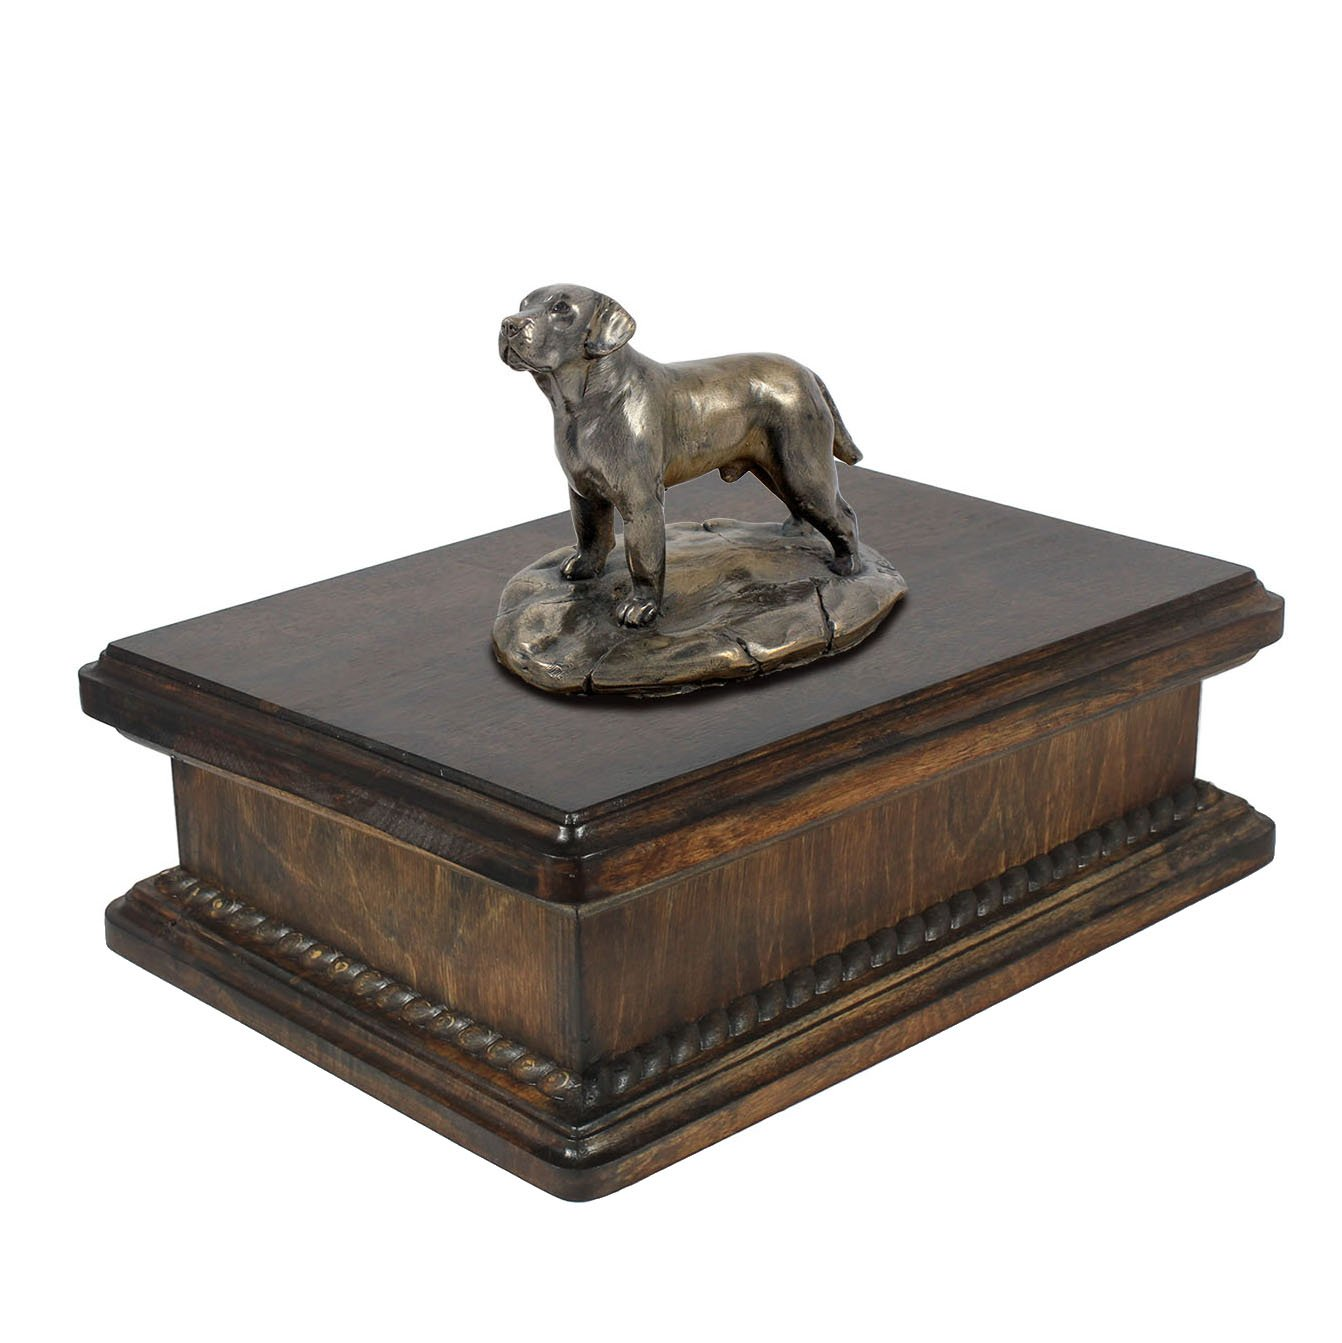 Labrador Retriever, memorial, urn for dog's ashes, with dog statue, exclusive, ArtDog